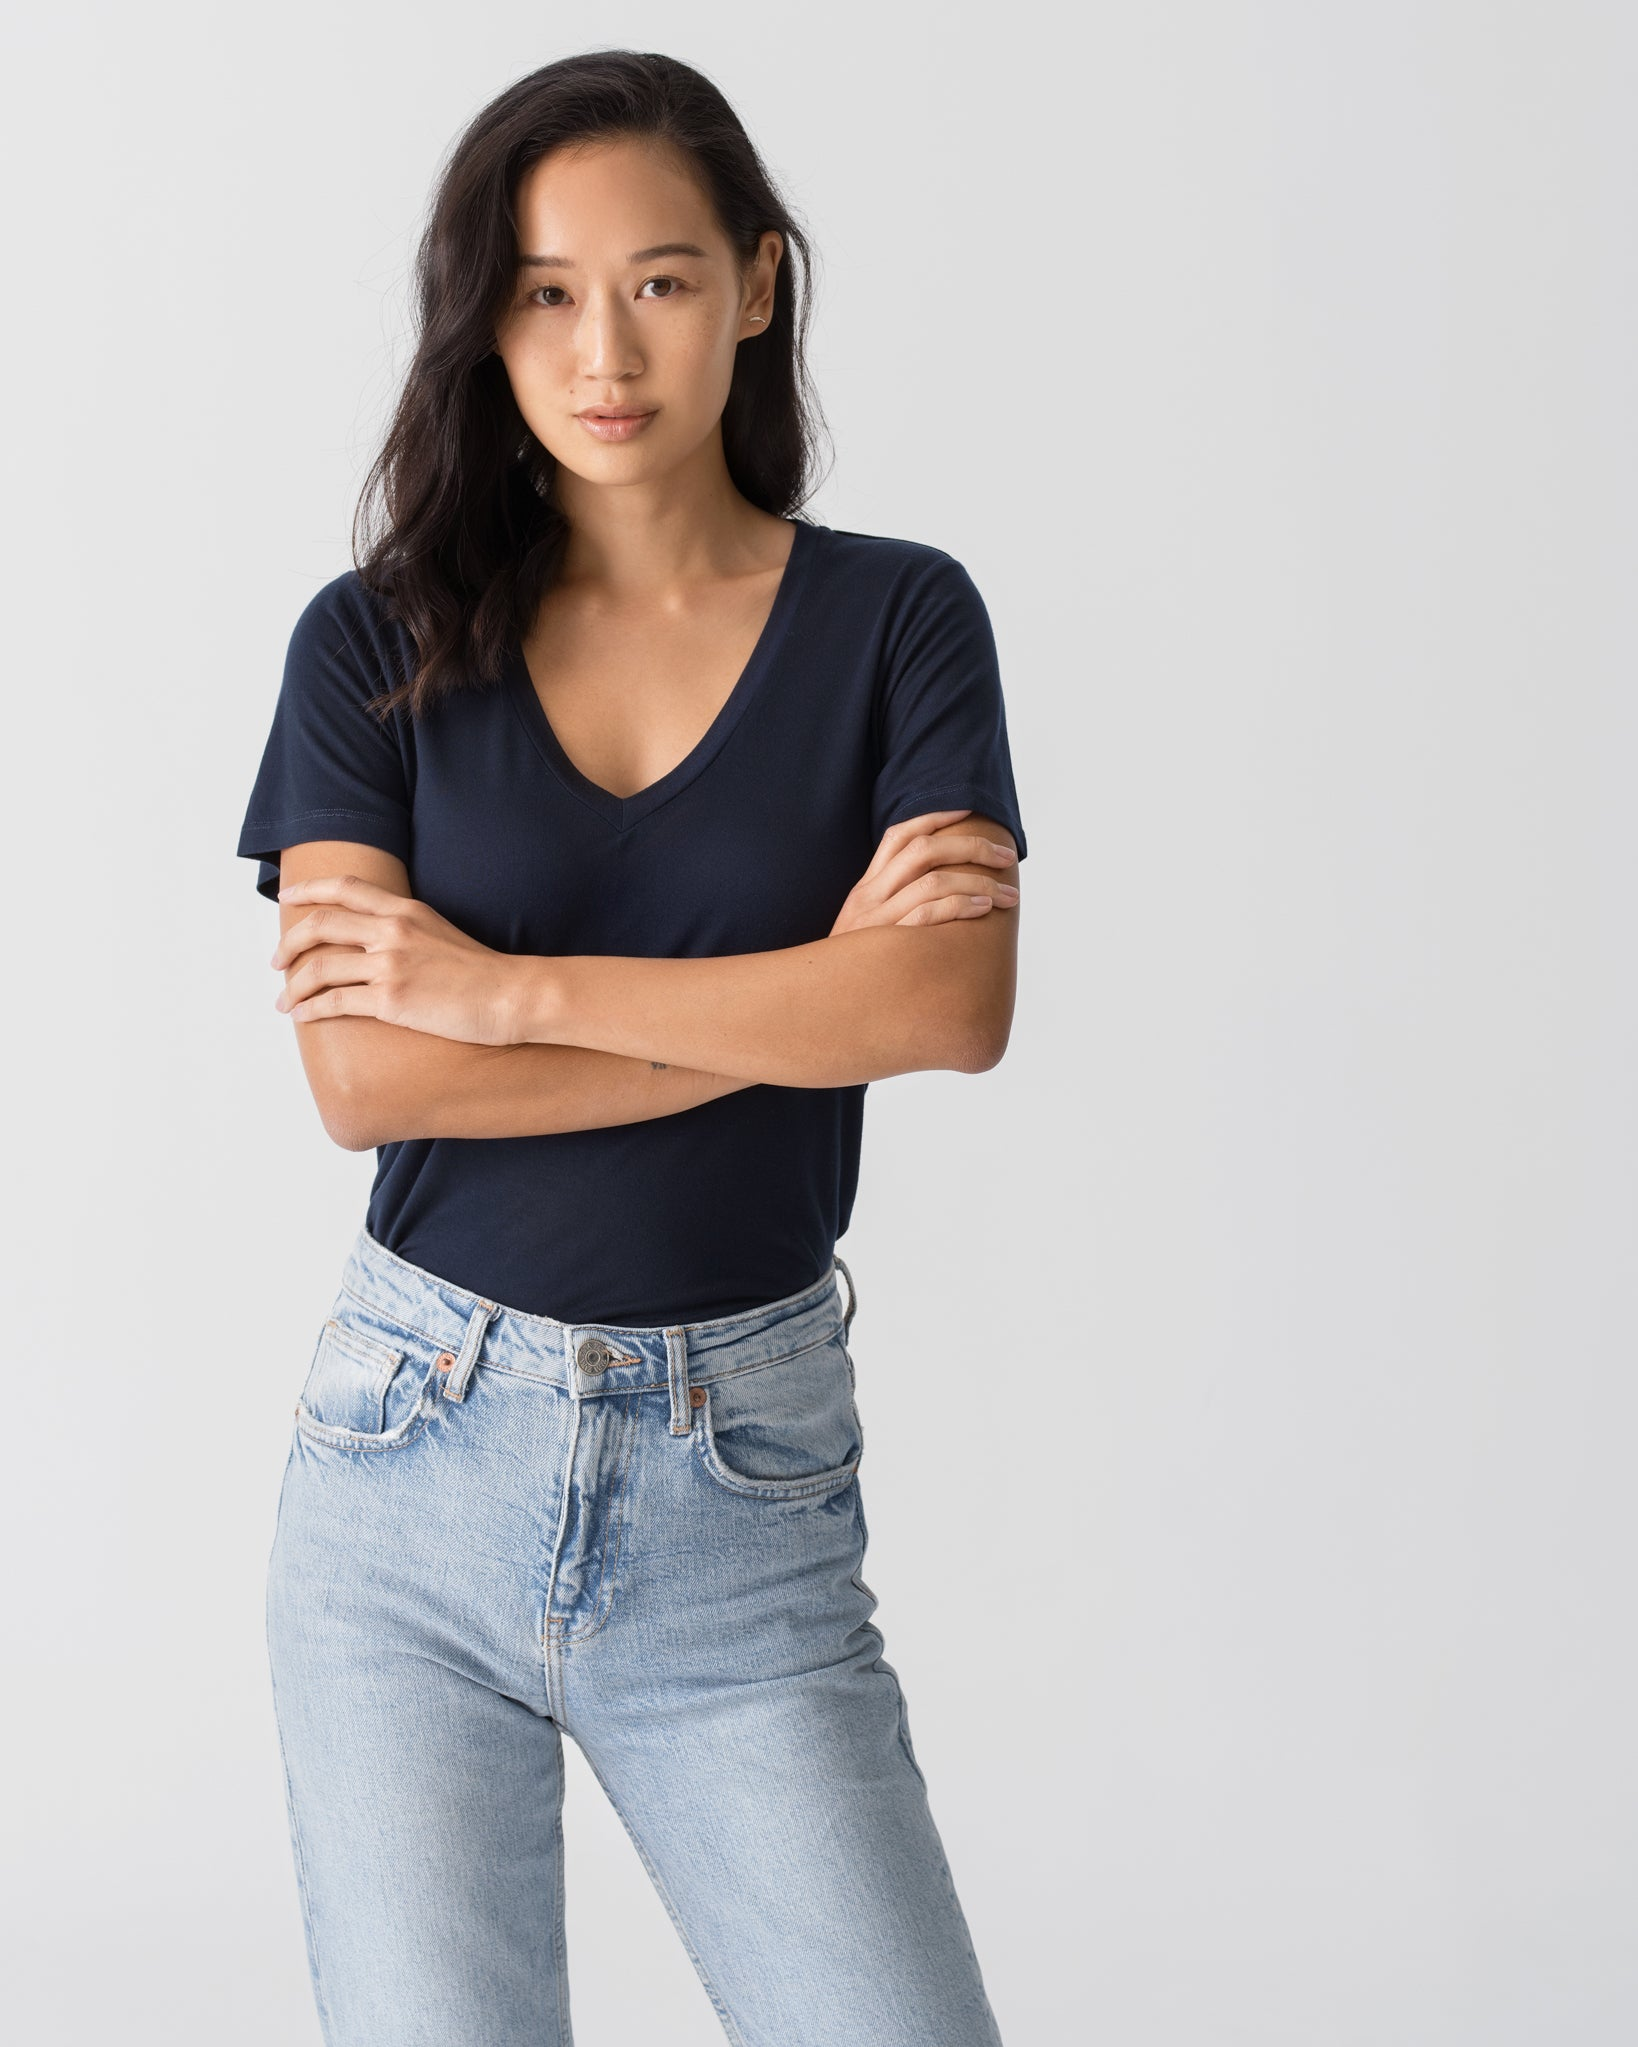 Women Tencel Lyocell V-Neck T-shirt Navy Blue Featured